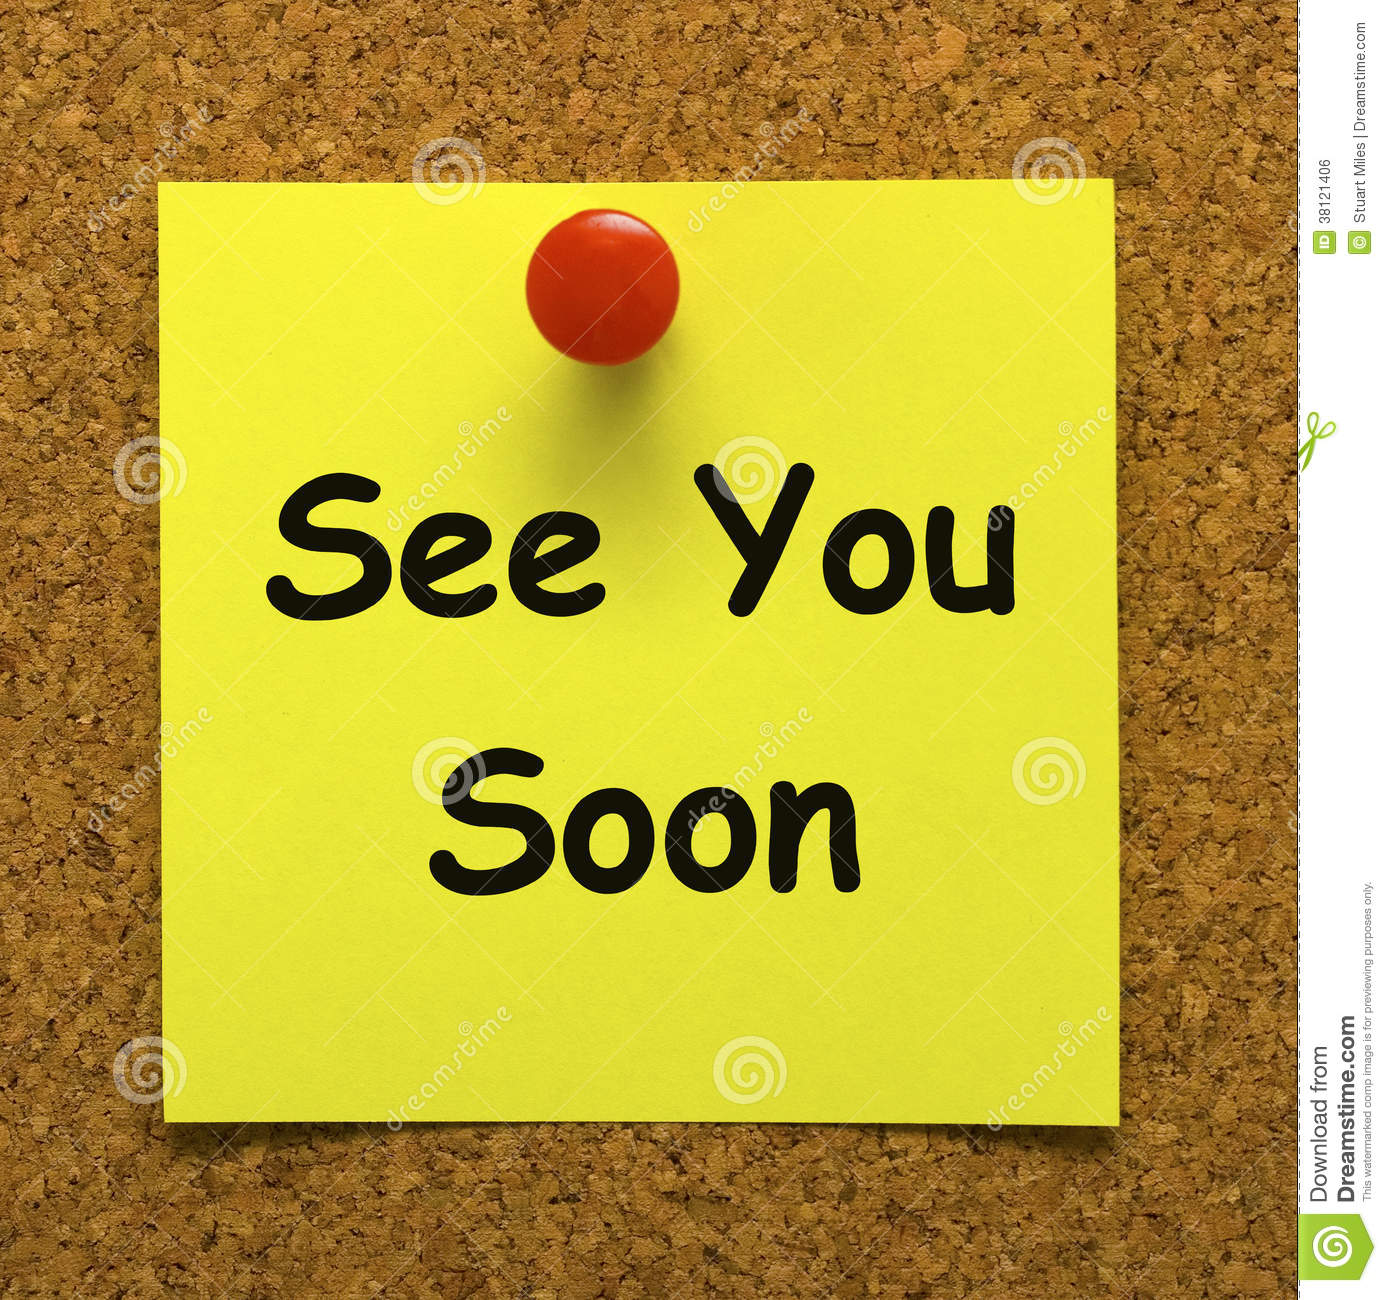 See You Soon Means Goodbye Or Farewell Royalty Free Stock